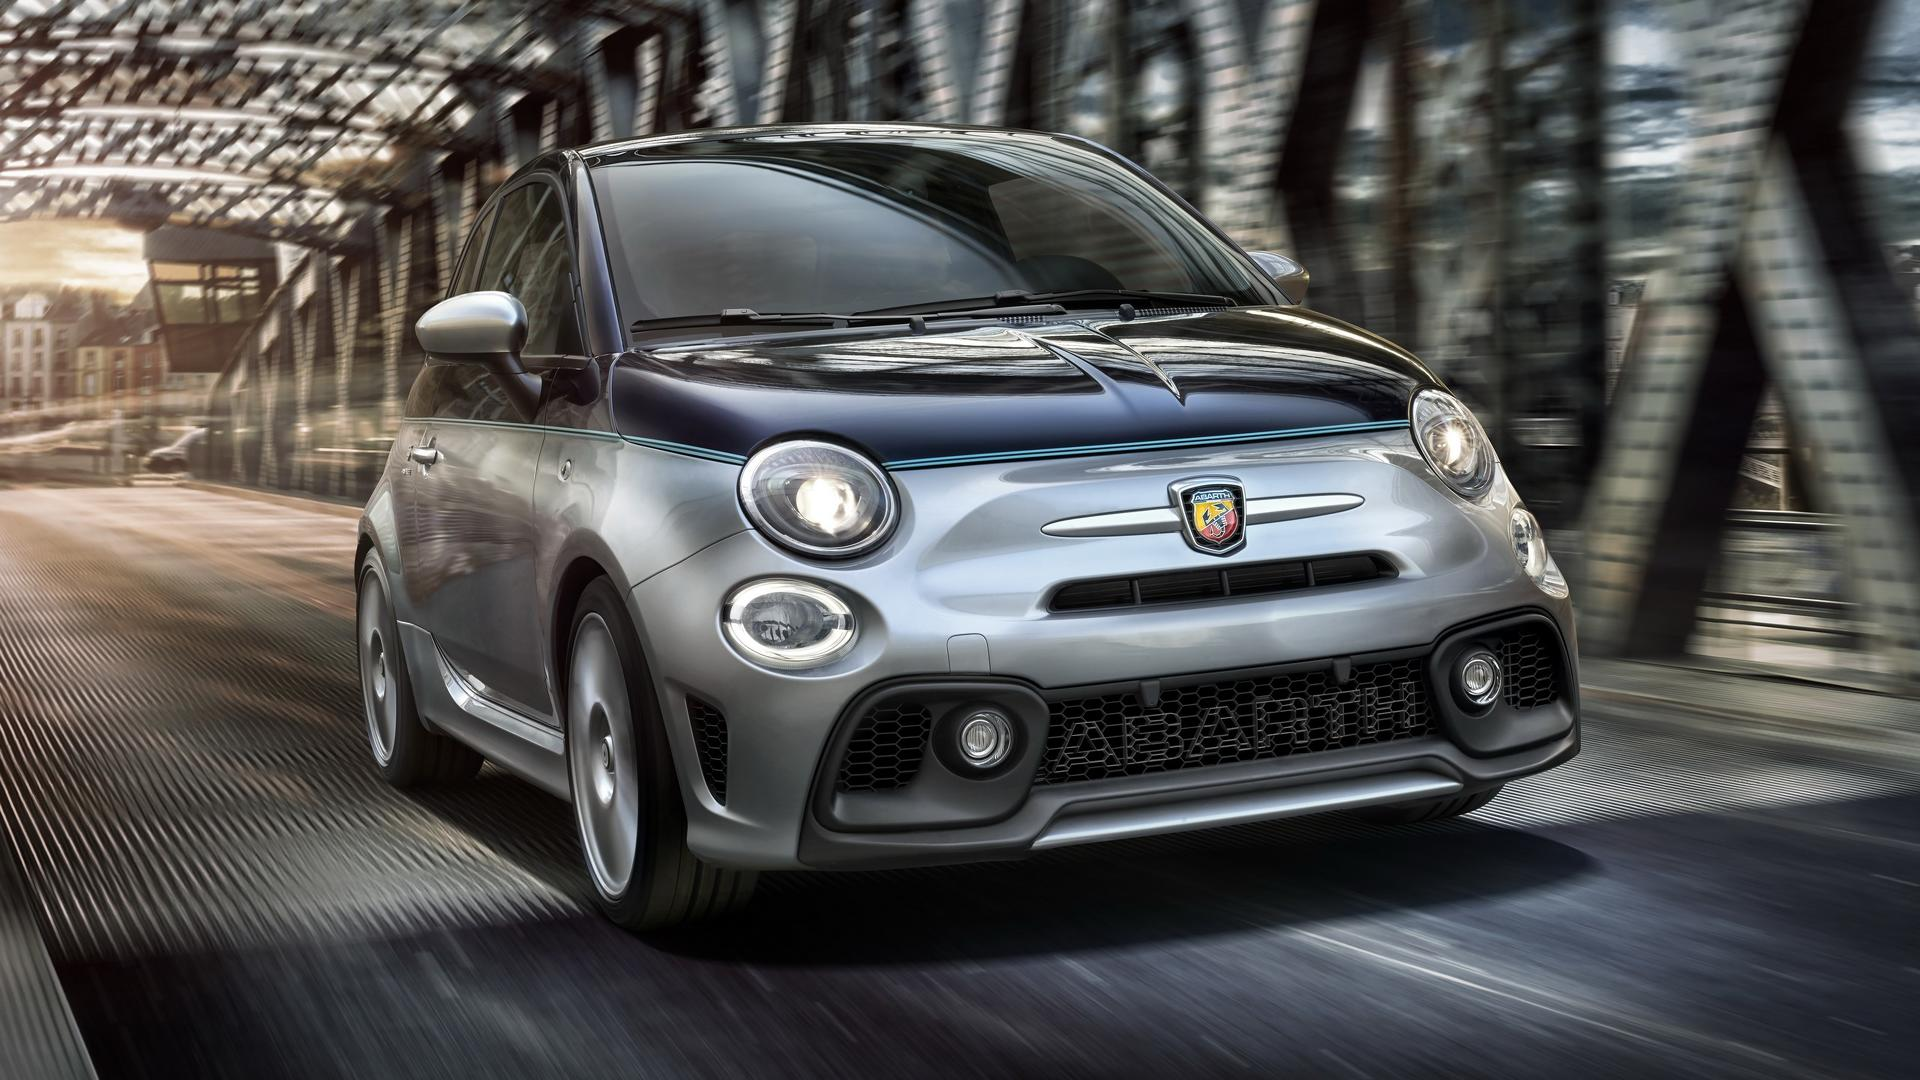 Abarth 695 Rivale Adds A Dash Of Elegance To 180-HP Pocket Rocket on fiat bravo, fiat seicento, fiat abarth gray, fiat sport, original fiat abarth, fiat 500l, fiat abarth custom, fiat 500c, fiat spider, fiat watercraft, fiat scorpion, fiat punto, fiat 500e, fiat cooper, fiat cabriolet, fiat panda,